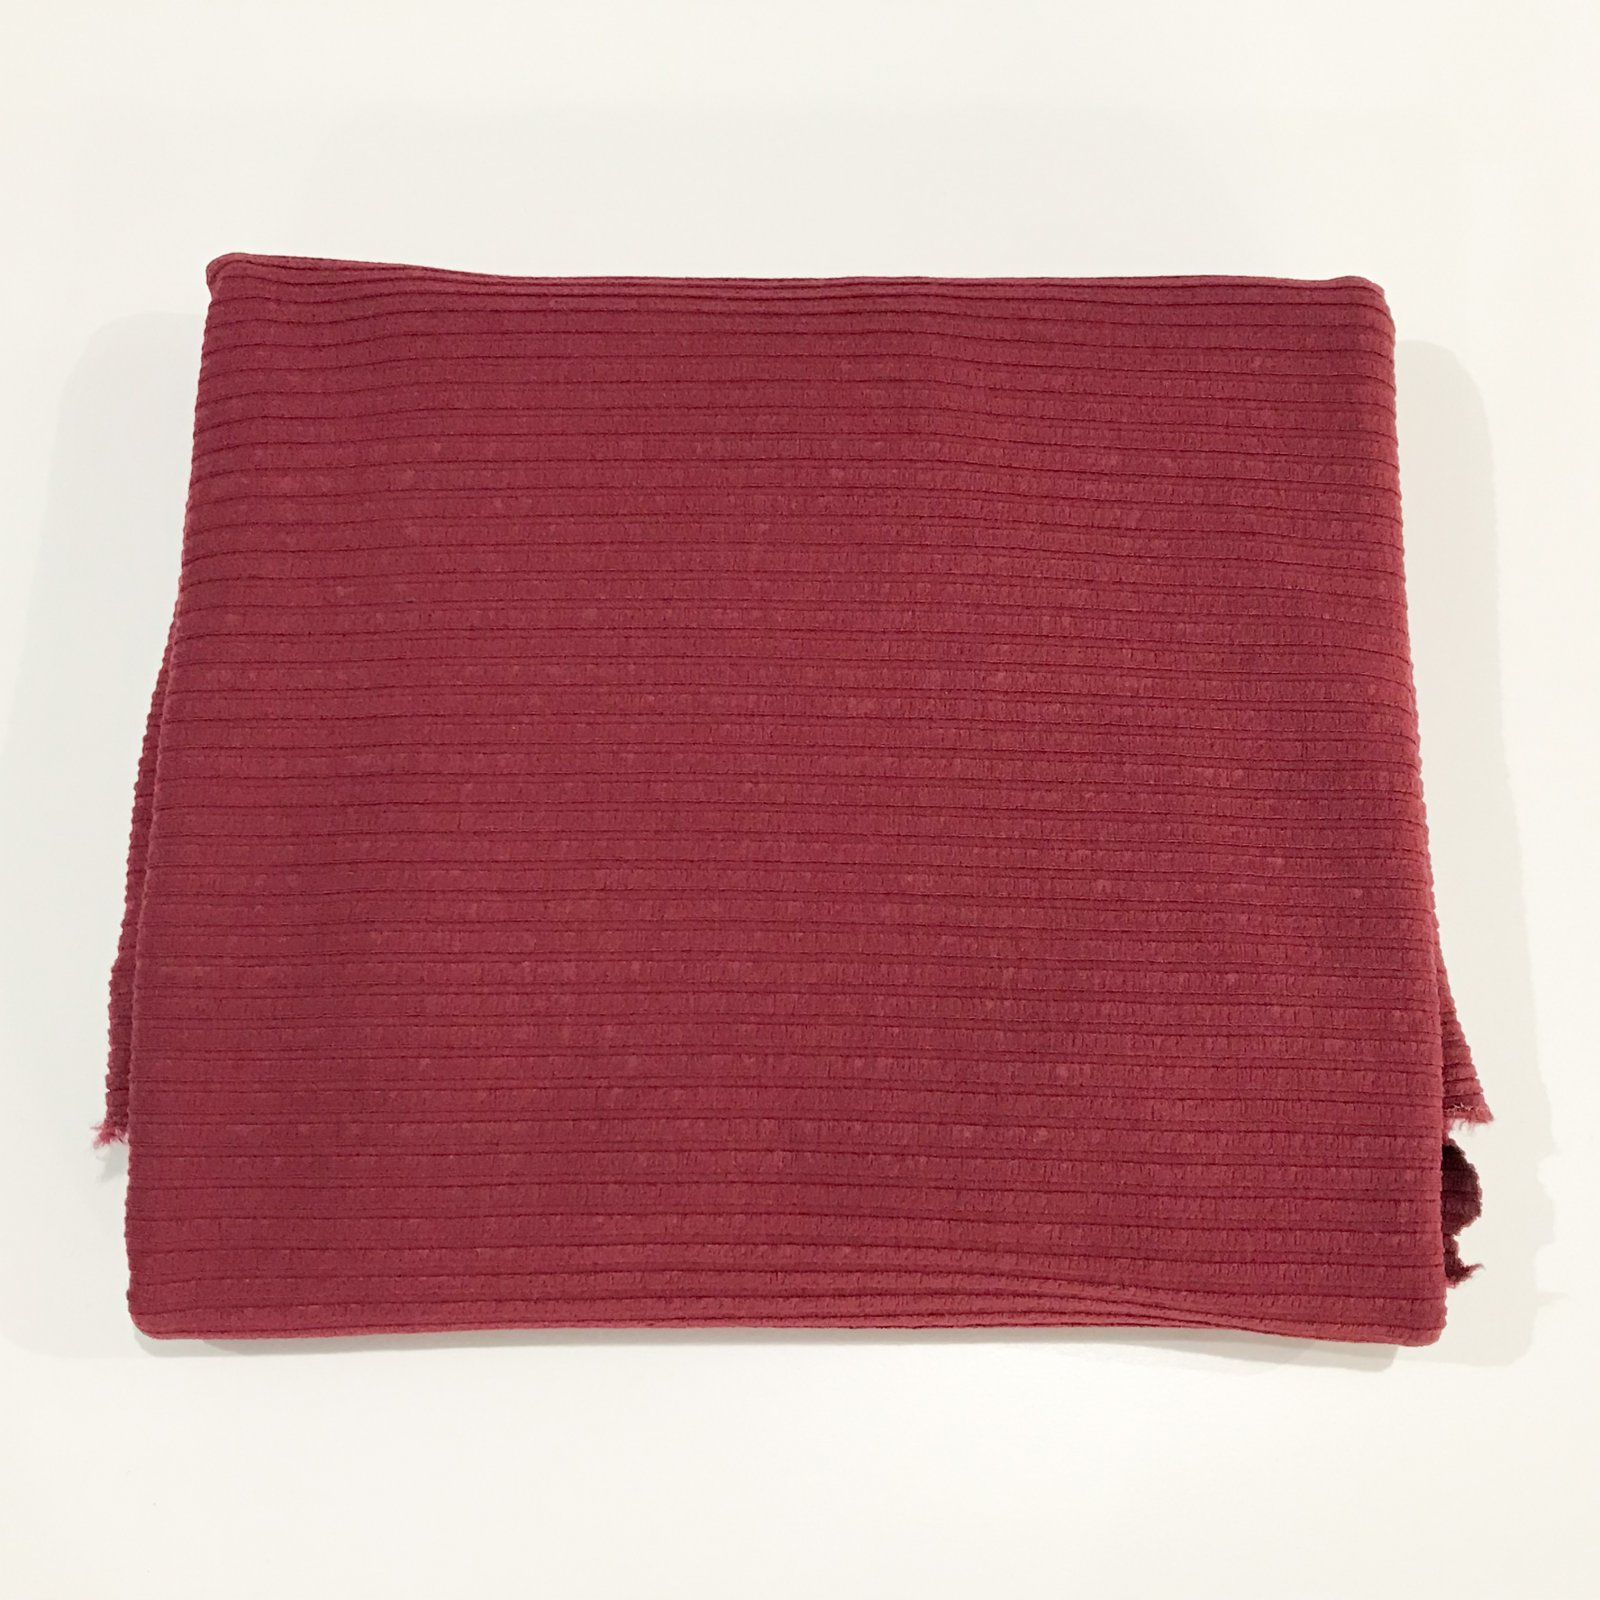 1 yard + 16 inches - Rayon Rib - 6 X 4 Wide Rib - Cranberry